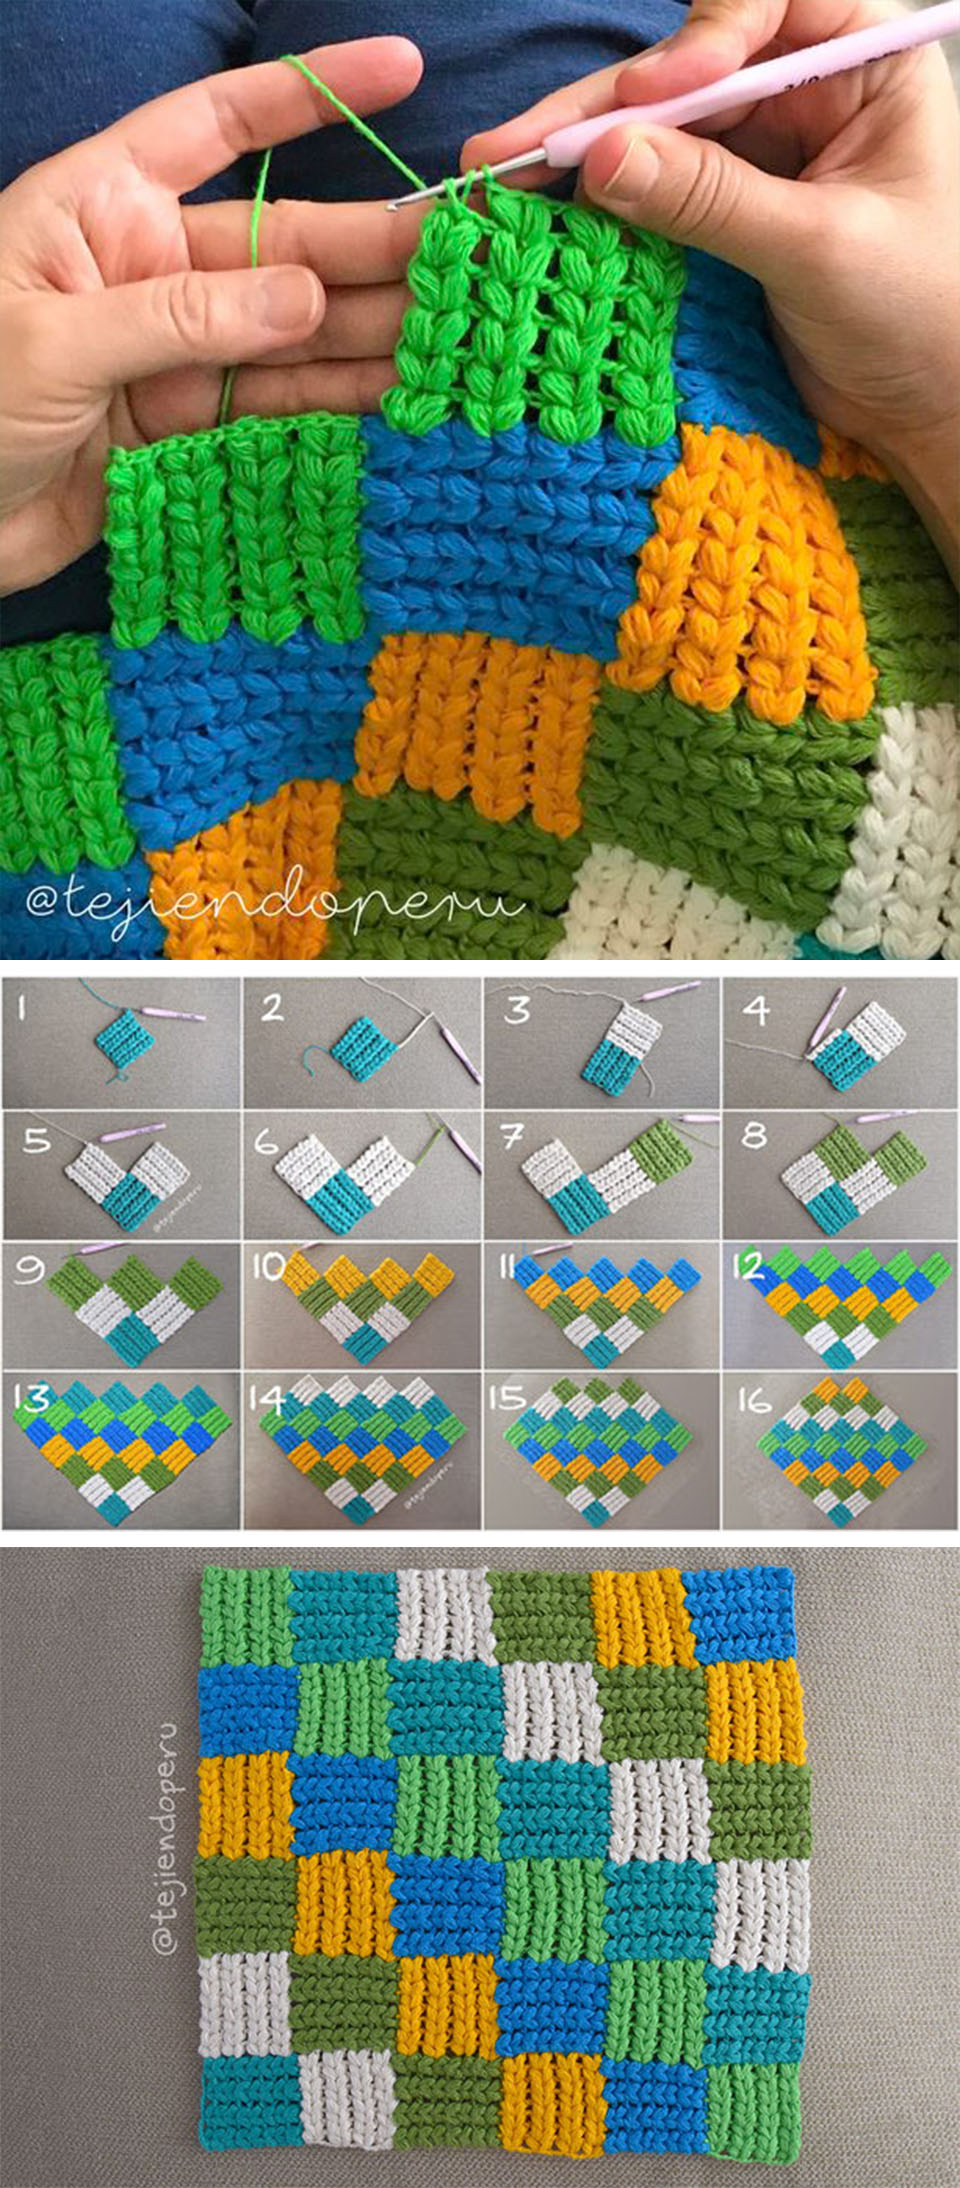 Interlaced Braid Stitch Crochet Pattern Tutorial